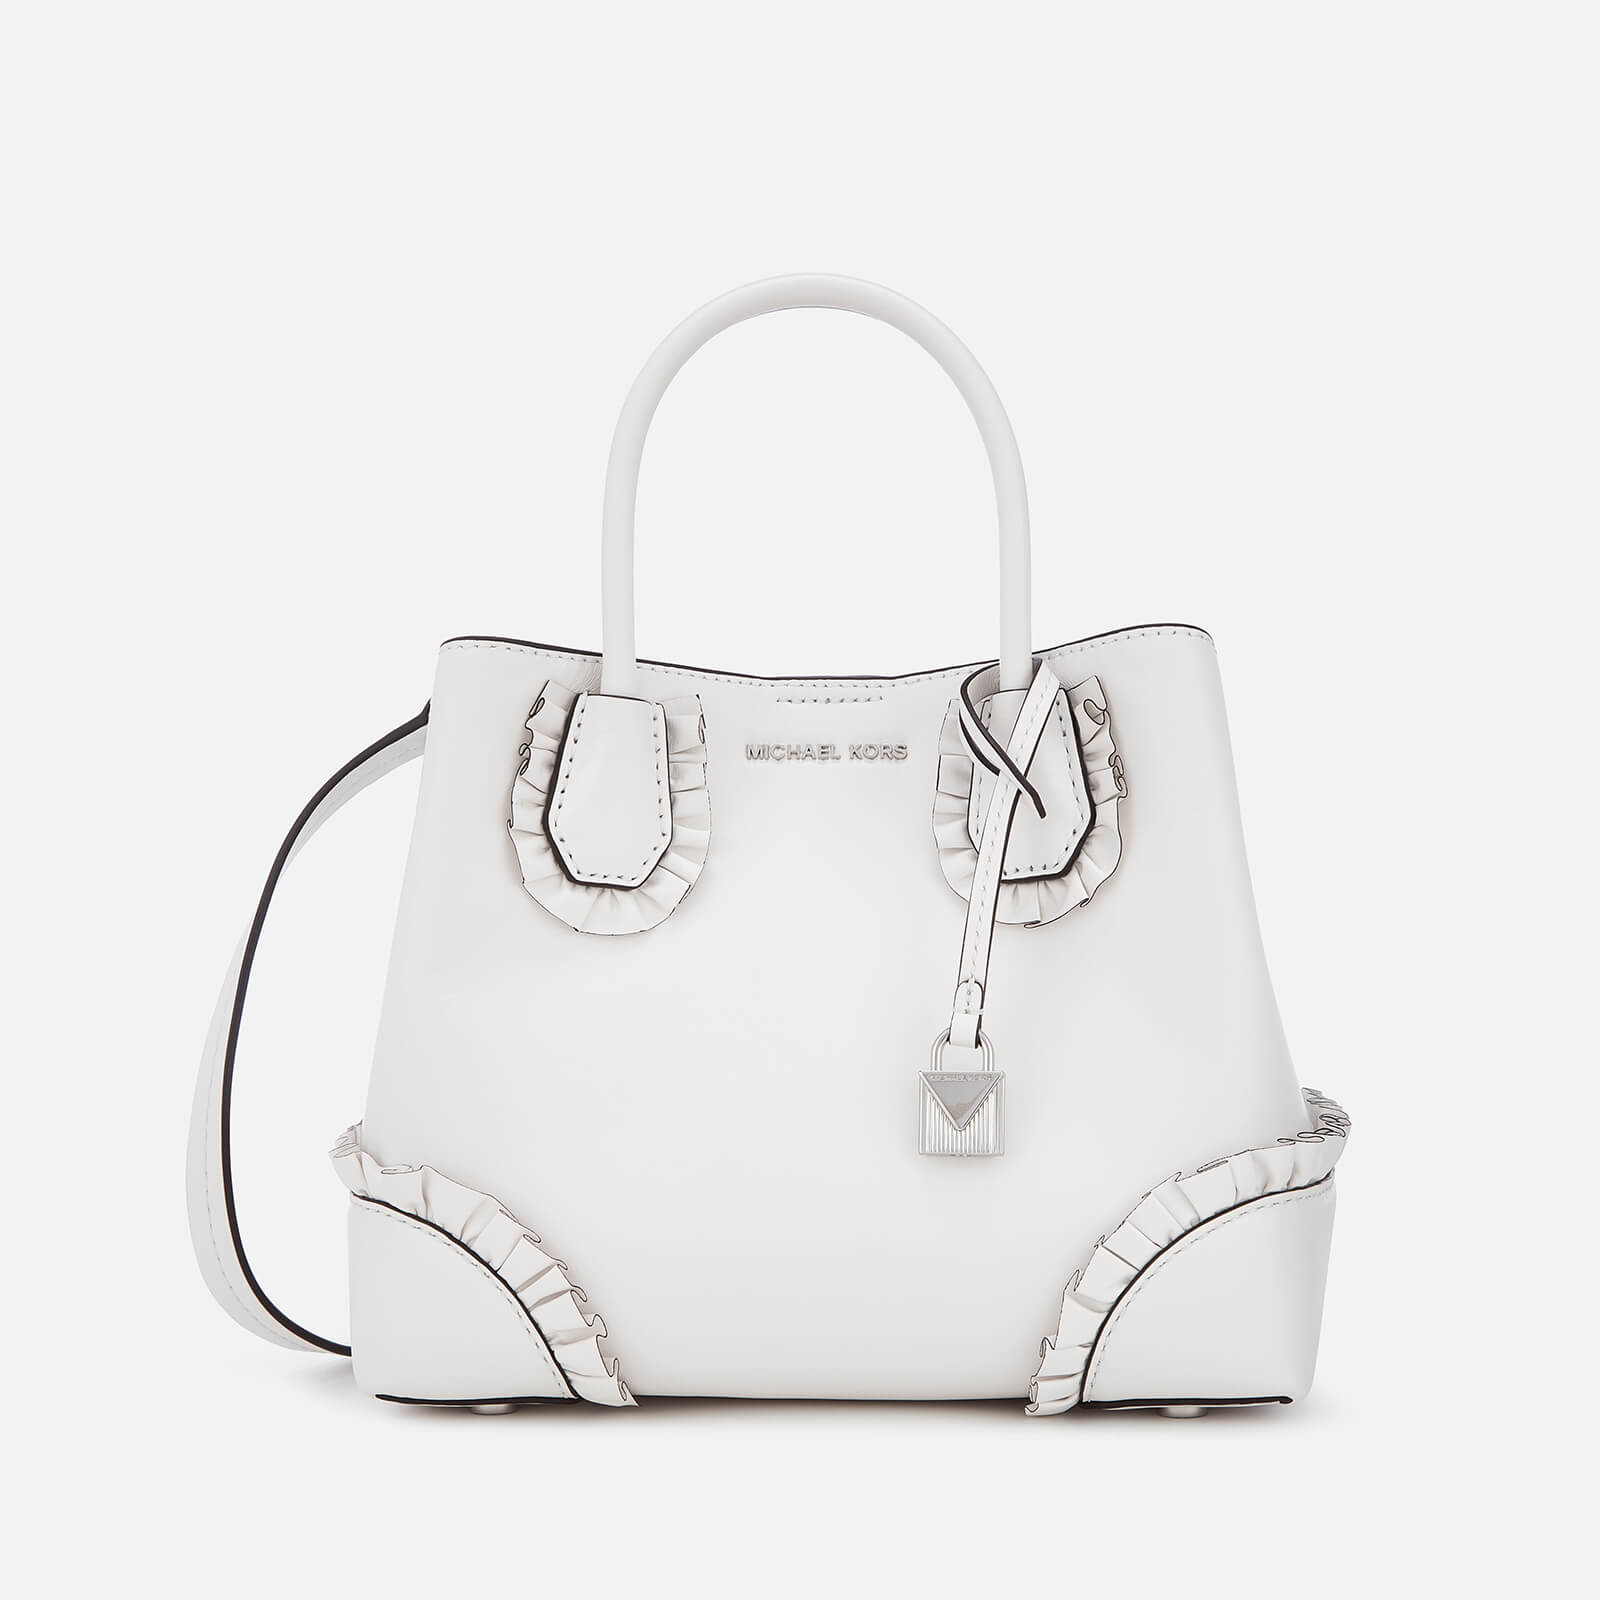 61f5bc247da3 MICHAEL MICHAEL KORS Women's Mercer Gallery Small Ruffle Satchel - Optic  White - Free UK Delivery over £50